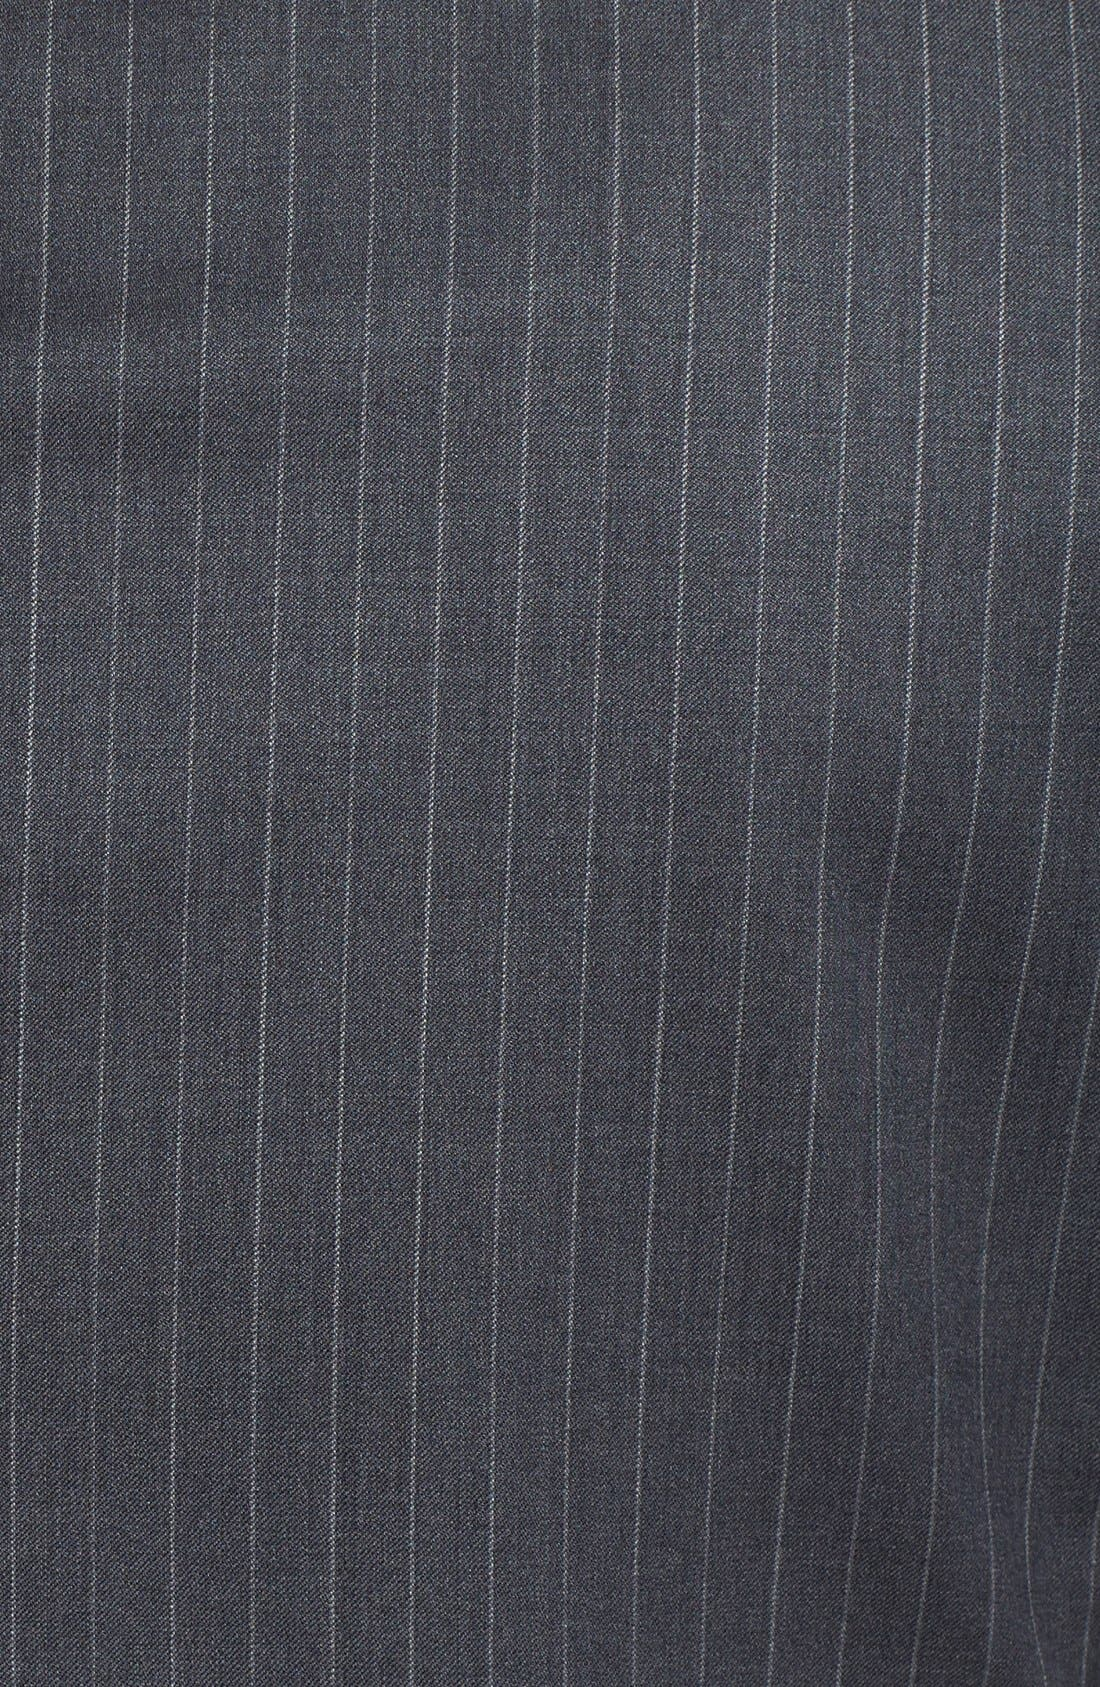 New York Classic Fit Stripe Wool Suit,                             Alternate thumbnail 8, color,                             030